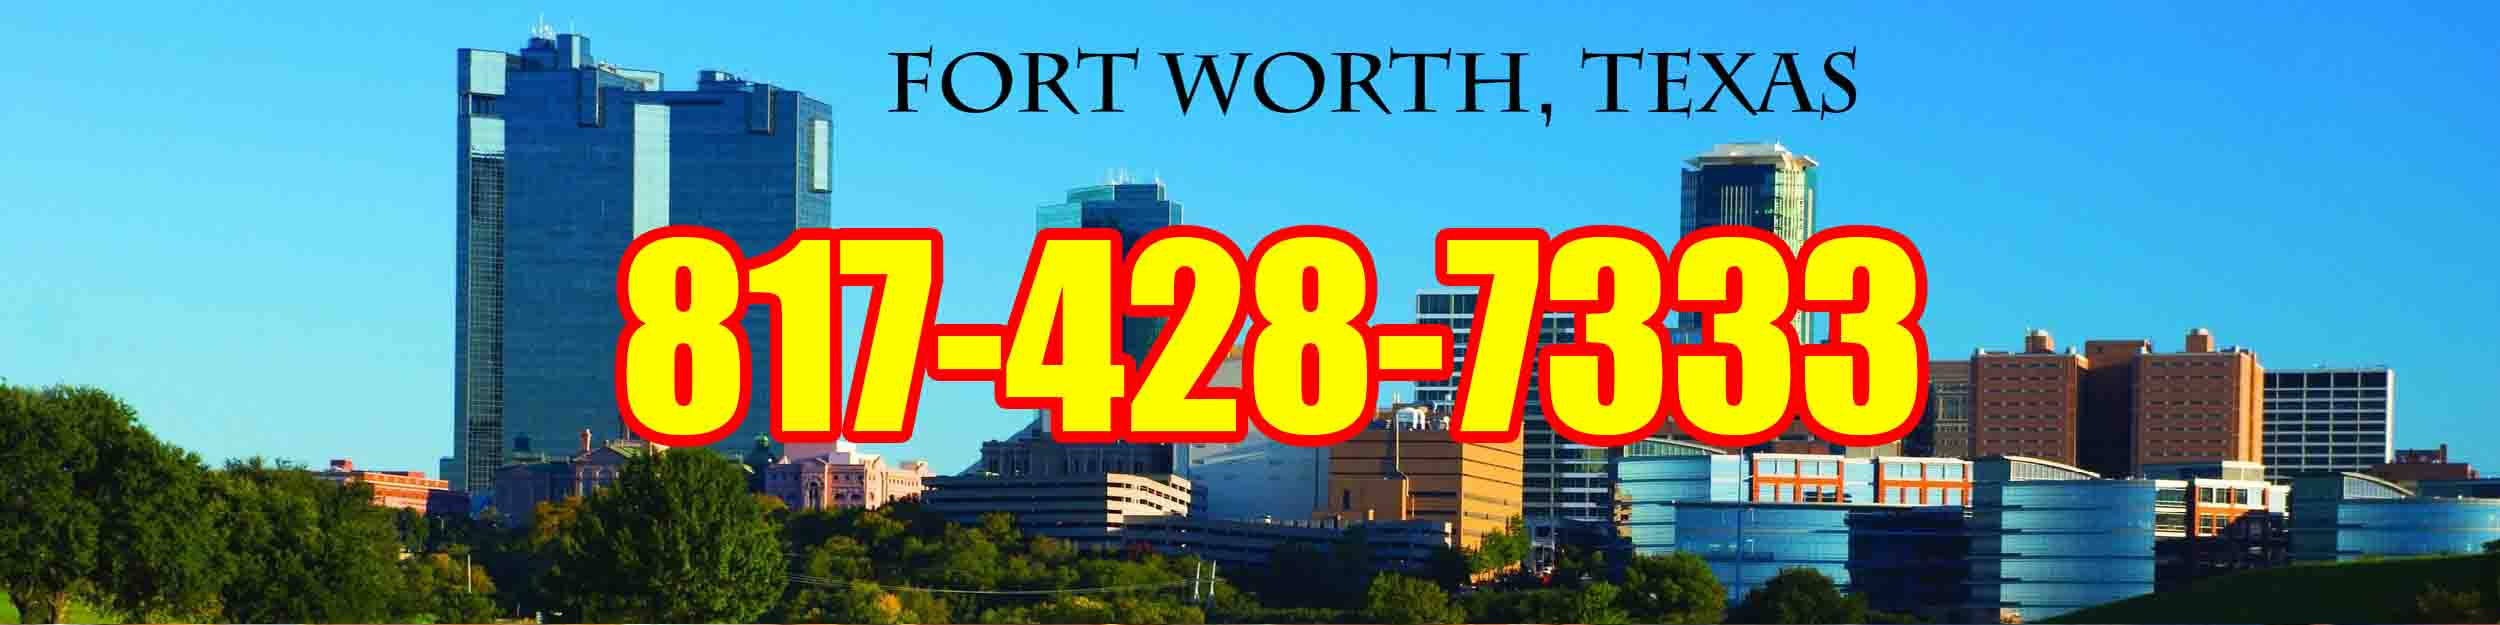 fort worth tx Header - Commercial Locksmiths in Fort Worth